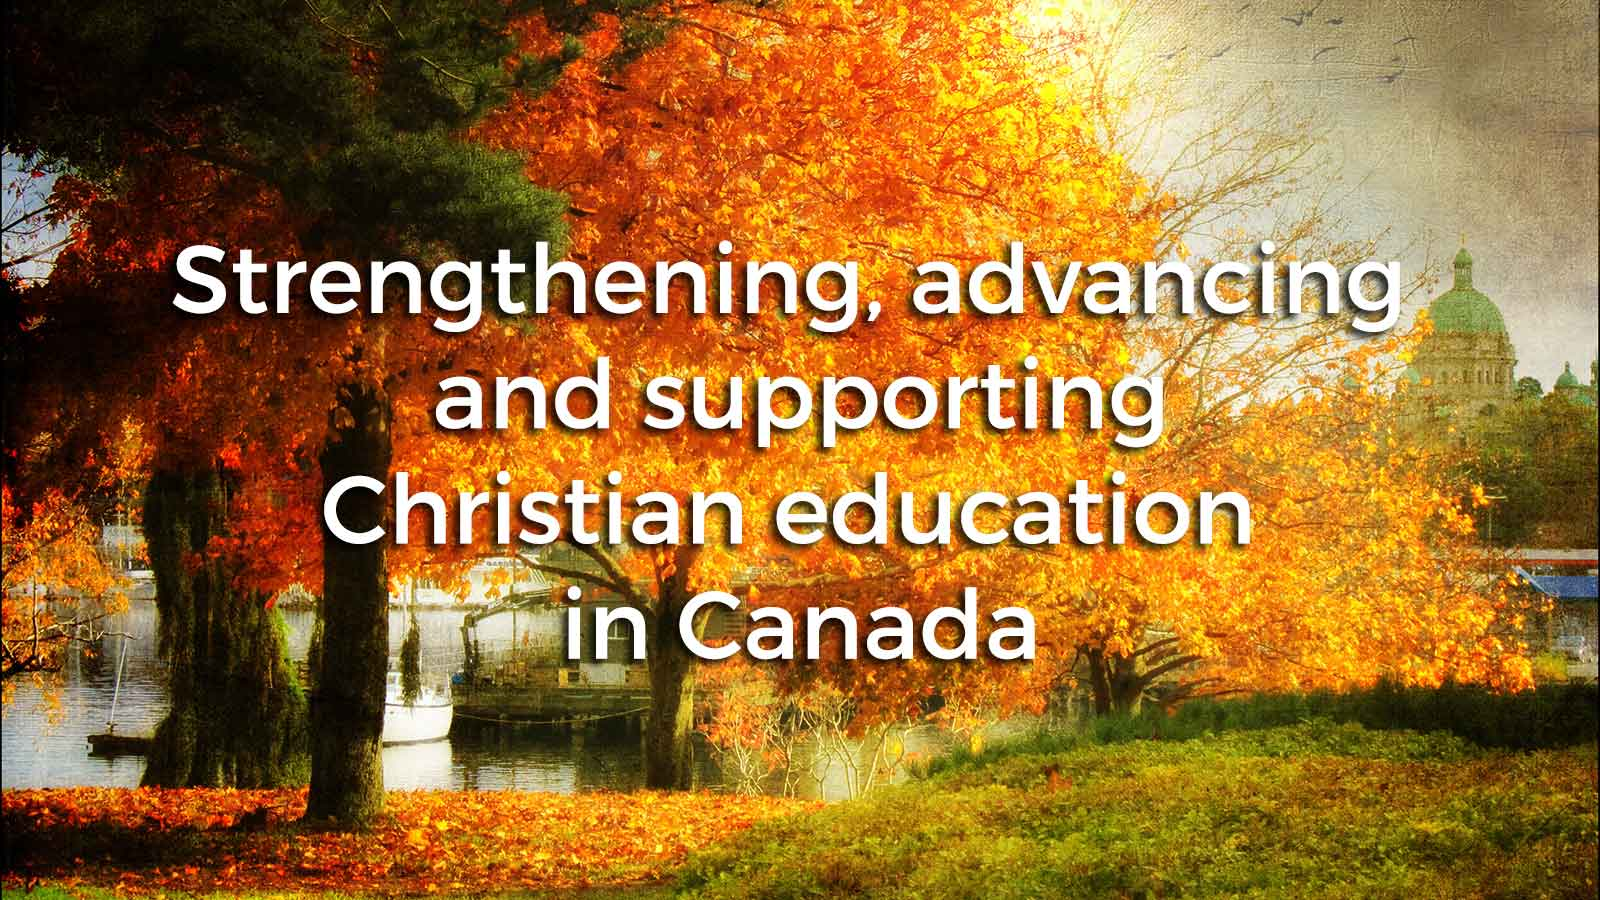 Christian Schools Canada - Strengthening, advancing and supporting Christian education in Canada